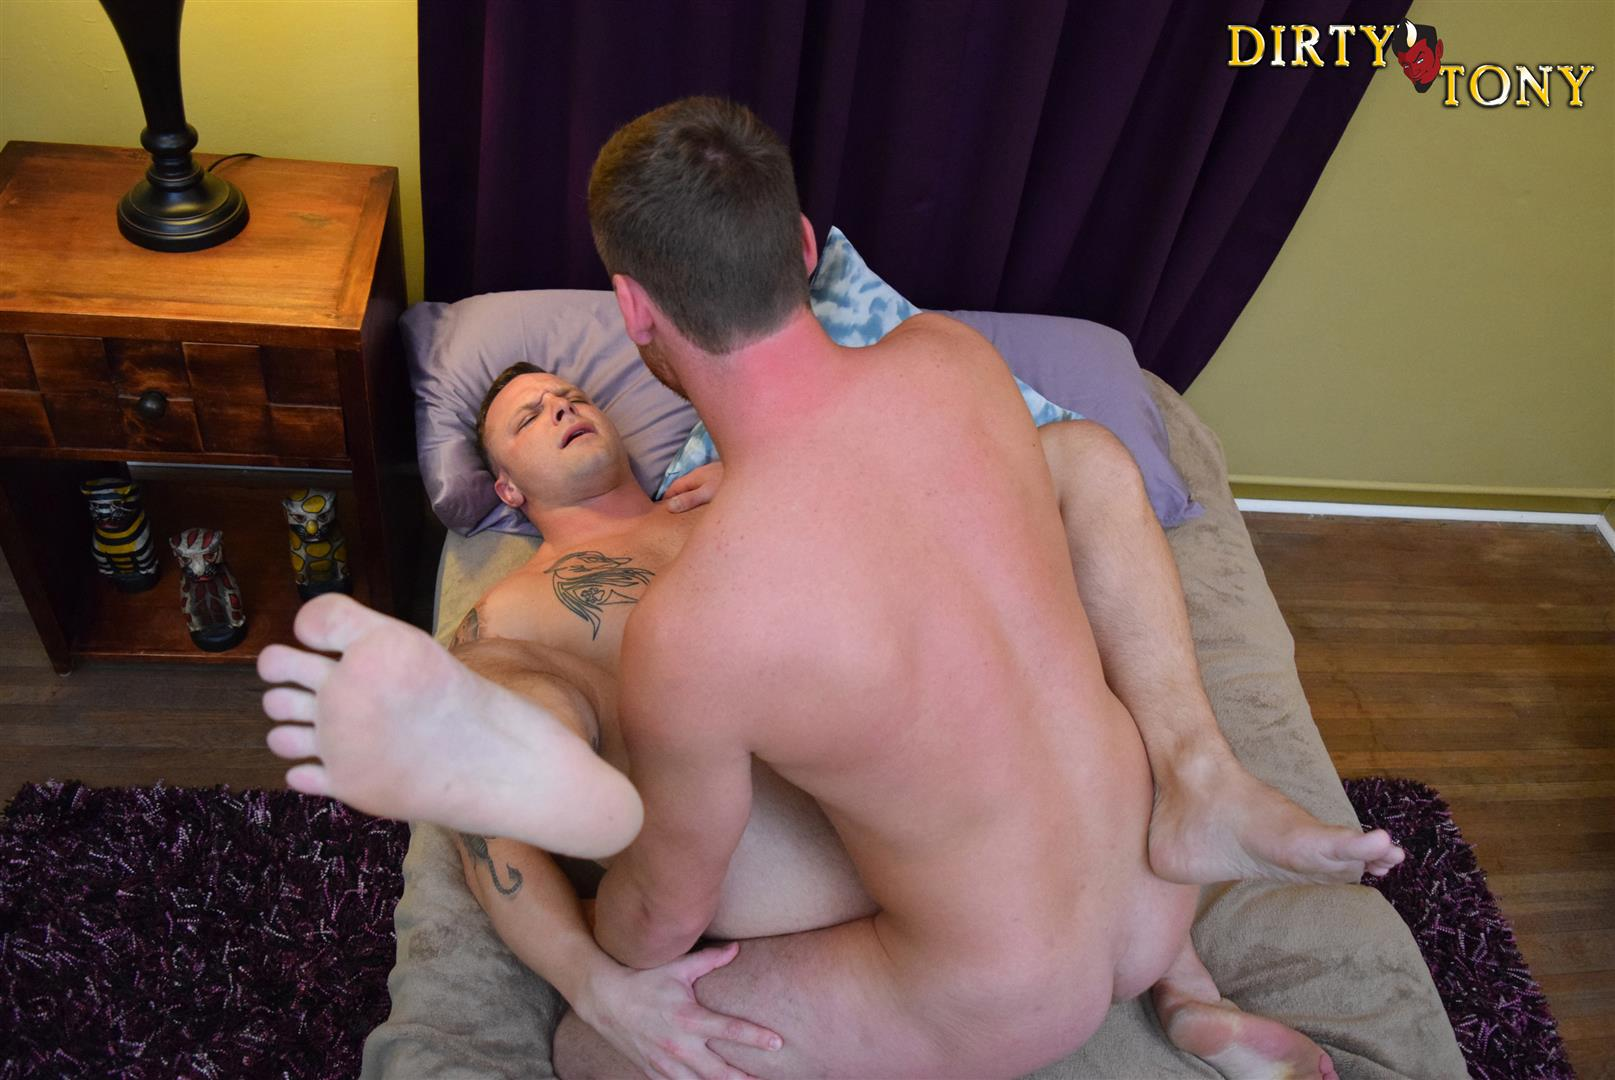 Dirty-Tony-Logan-Blake-and-Connor-Maguire-Marine-Getting-Fucked-In-the-Ass-Amateur-Gay-Porn-11 Former US Marine Takes A Big Uncut Cock Up The Ass